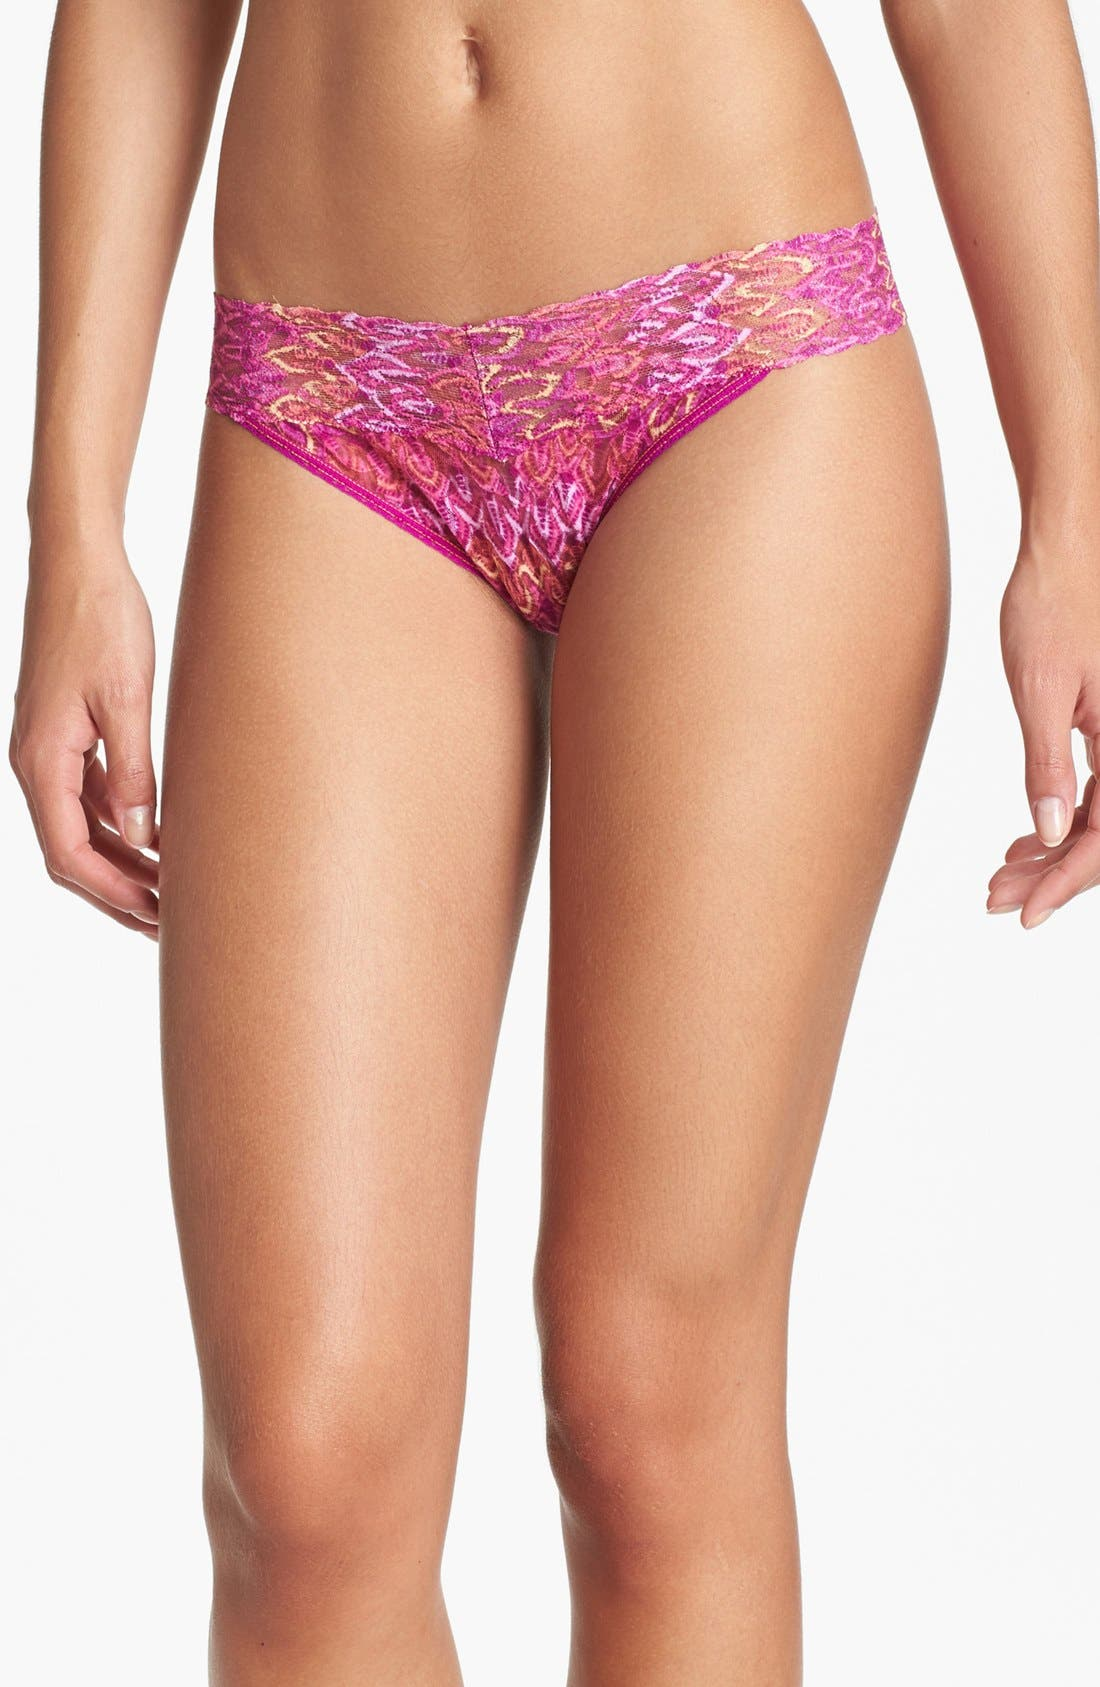 Alternate Image 1 Selected - Hanky Panky 'Flame' Regular Rise Thong